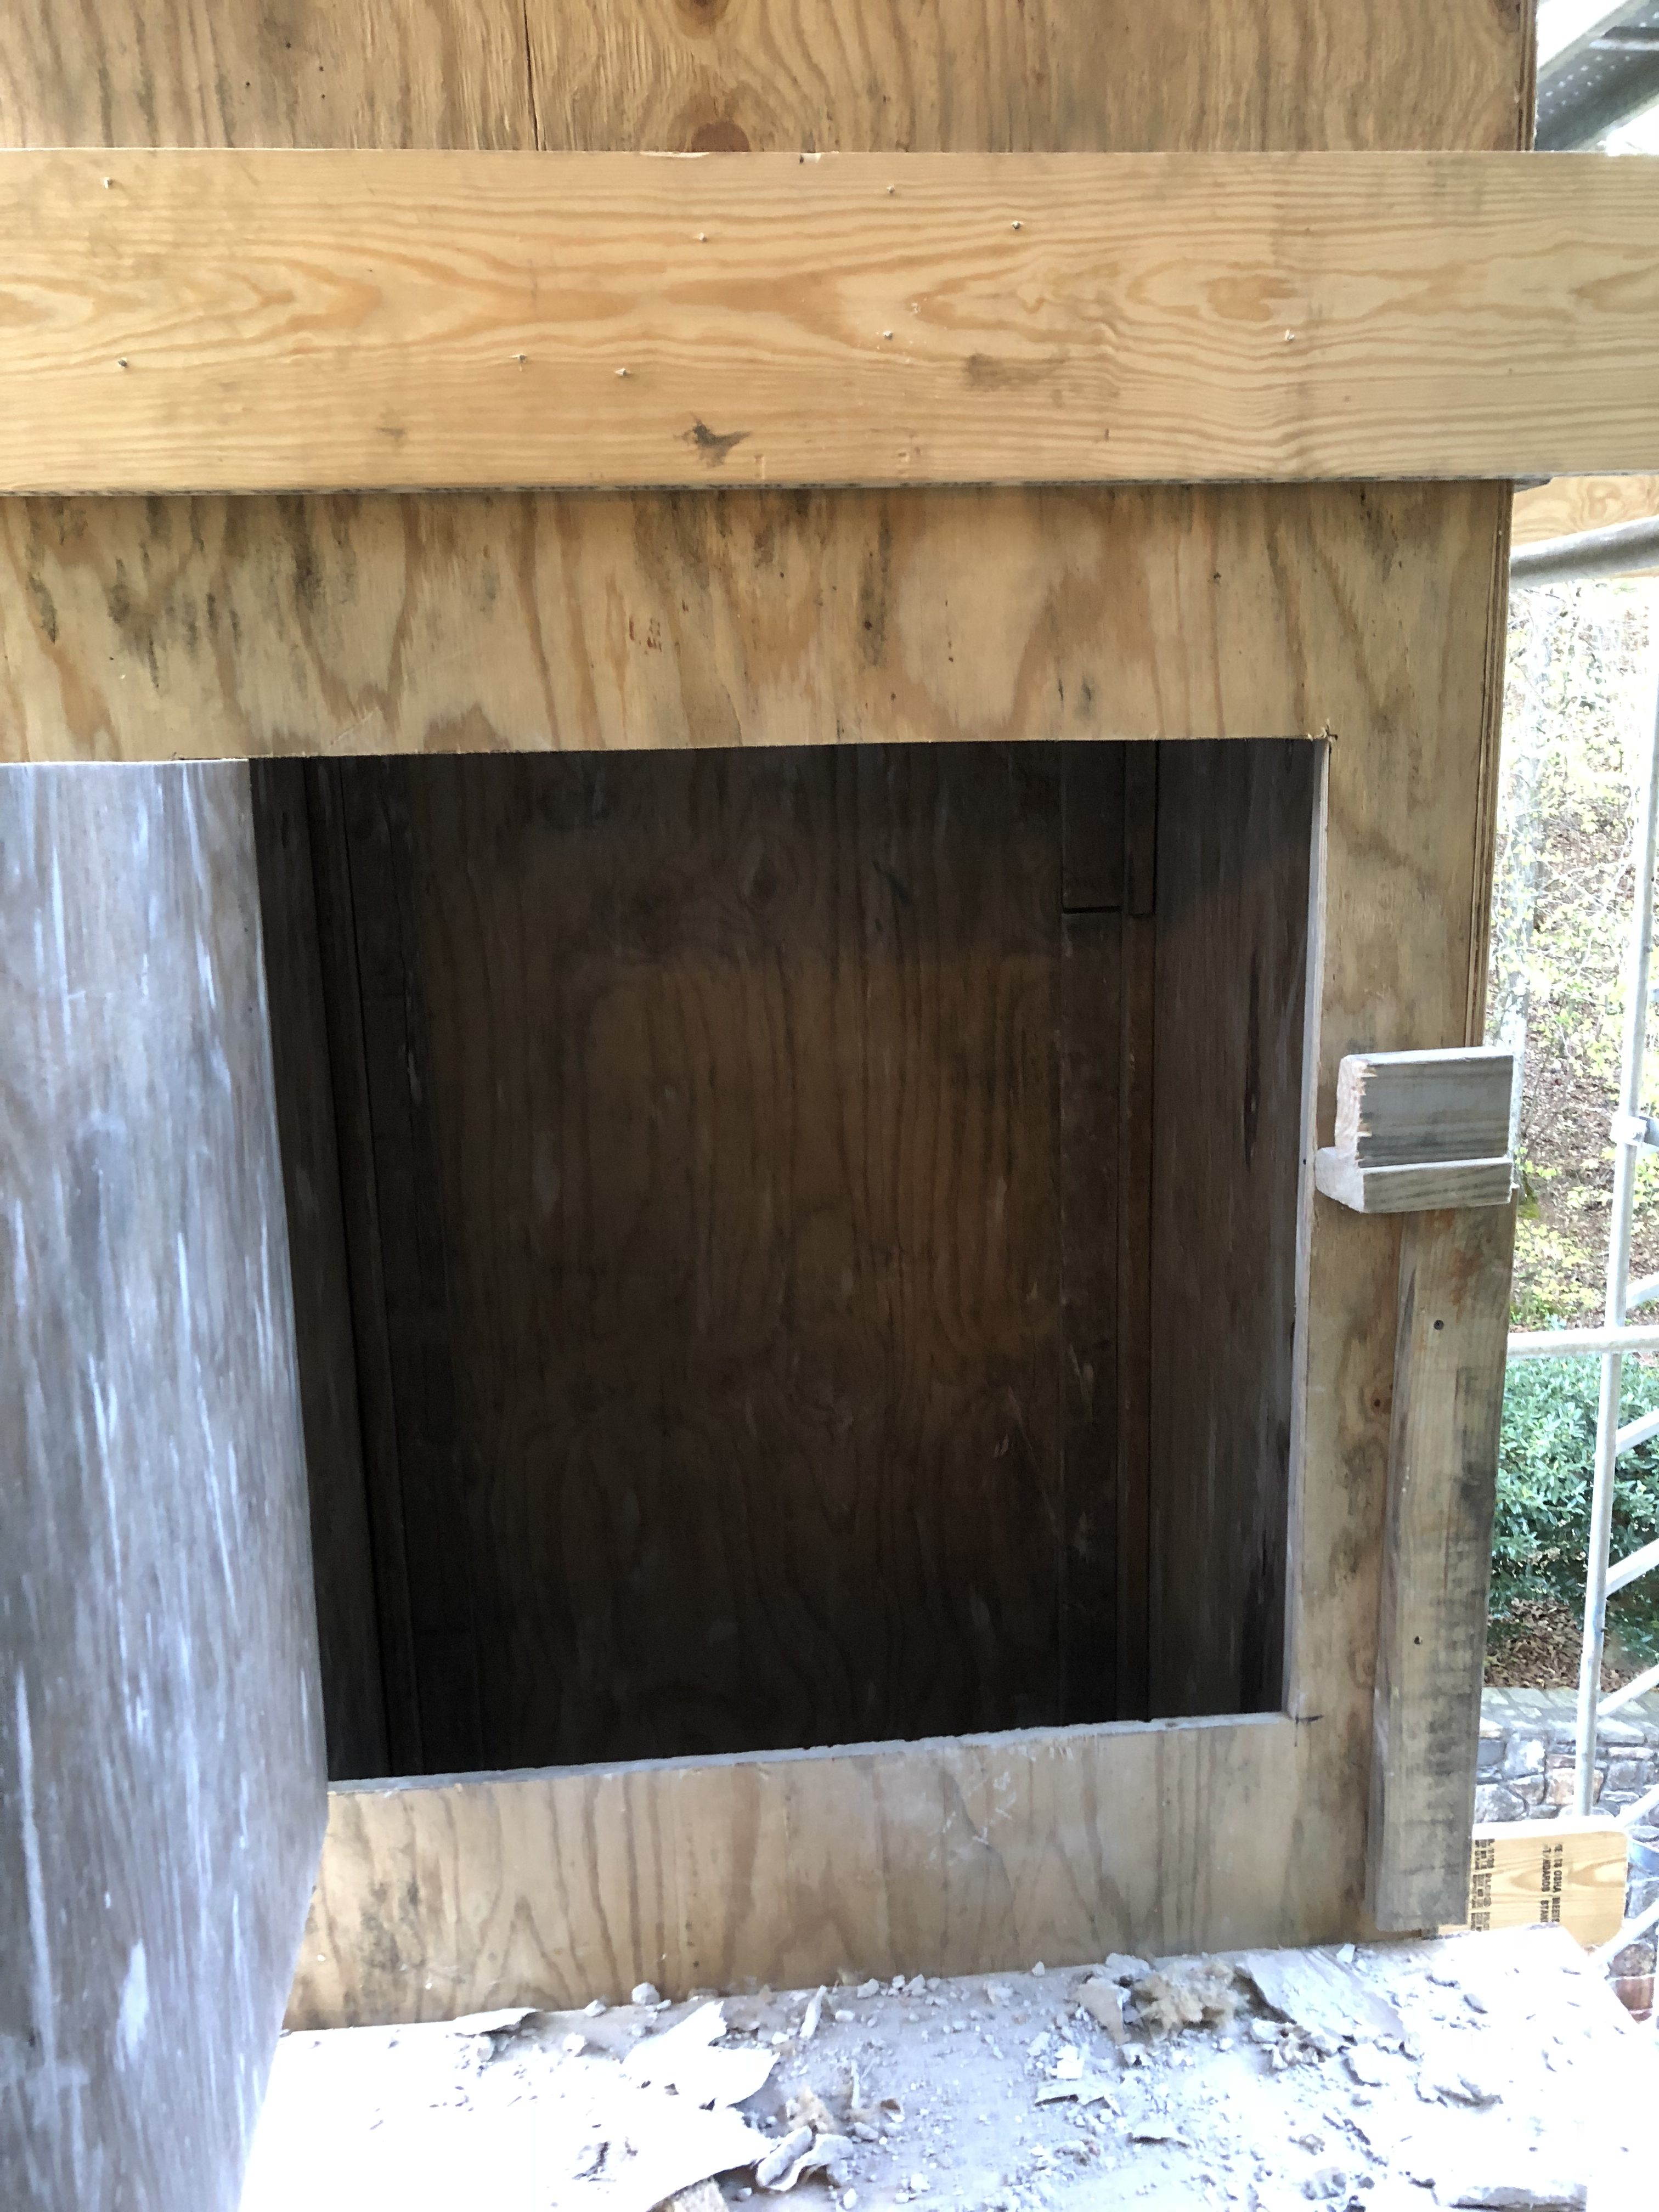 Plywood Trash Chute